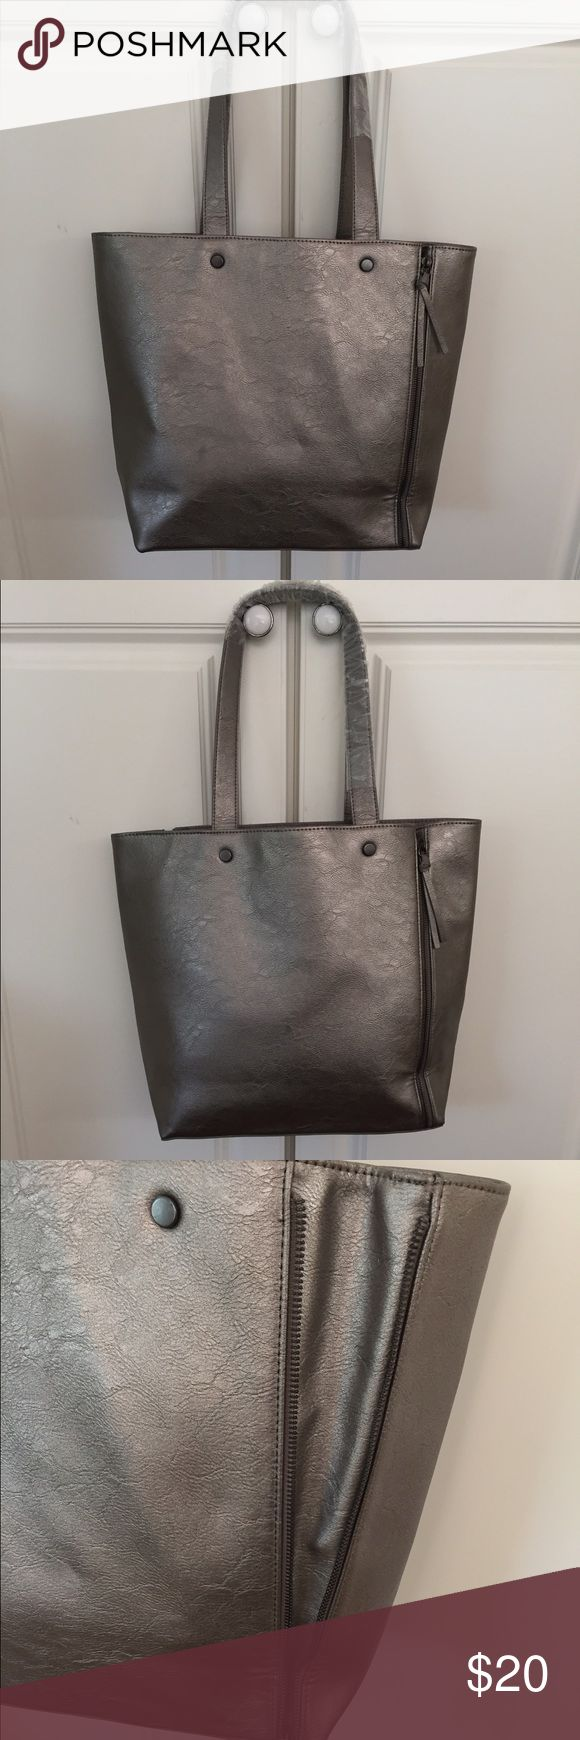 "Neiman Marcus Silver/Pewter Tote NWOT Dull silver Tote from Neiman Marcus. New with plastic still on handles; no sales tag. Faux leather. About 16"" across top, 13"" high, 10"" strap drop. 👗👚👜Check out the $6 section of my closet (before the sold items). Lots of bundle-worthy $6 items! 15% bundle discount on 2+ items in a bundle.🚫NO TRADES🚫 Neiman Marcus Bags Totes"